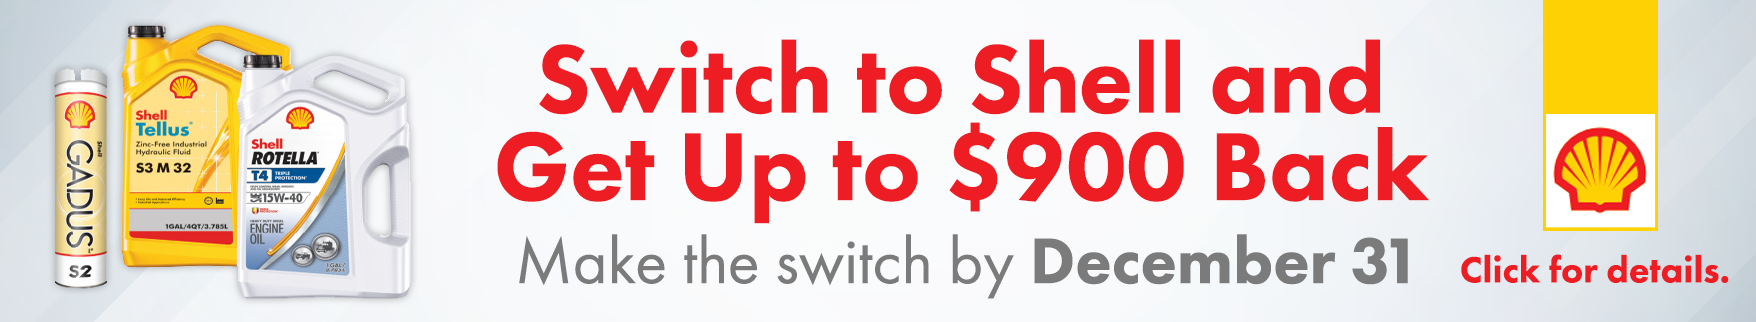 Switch to Shell